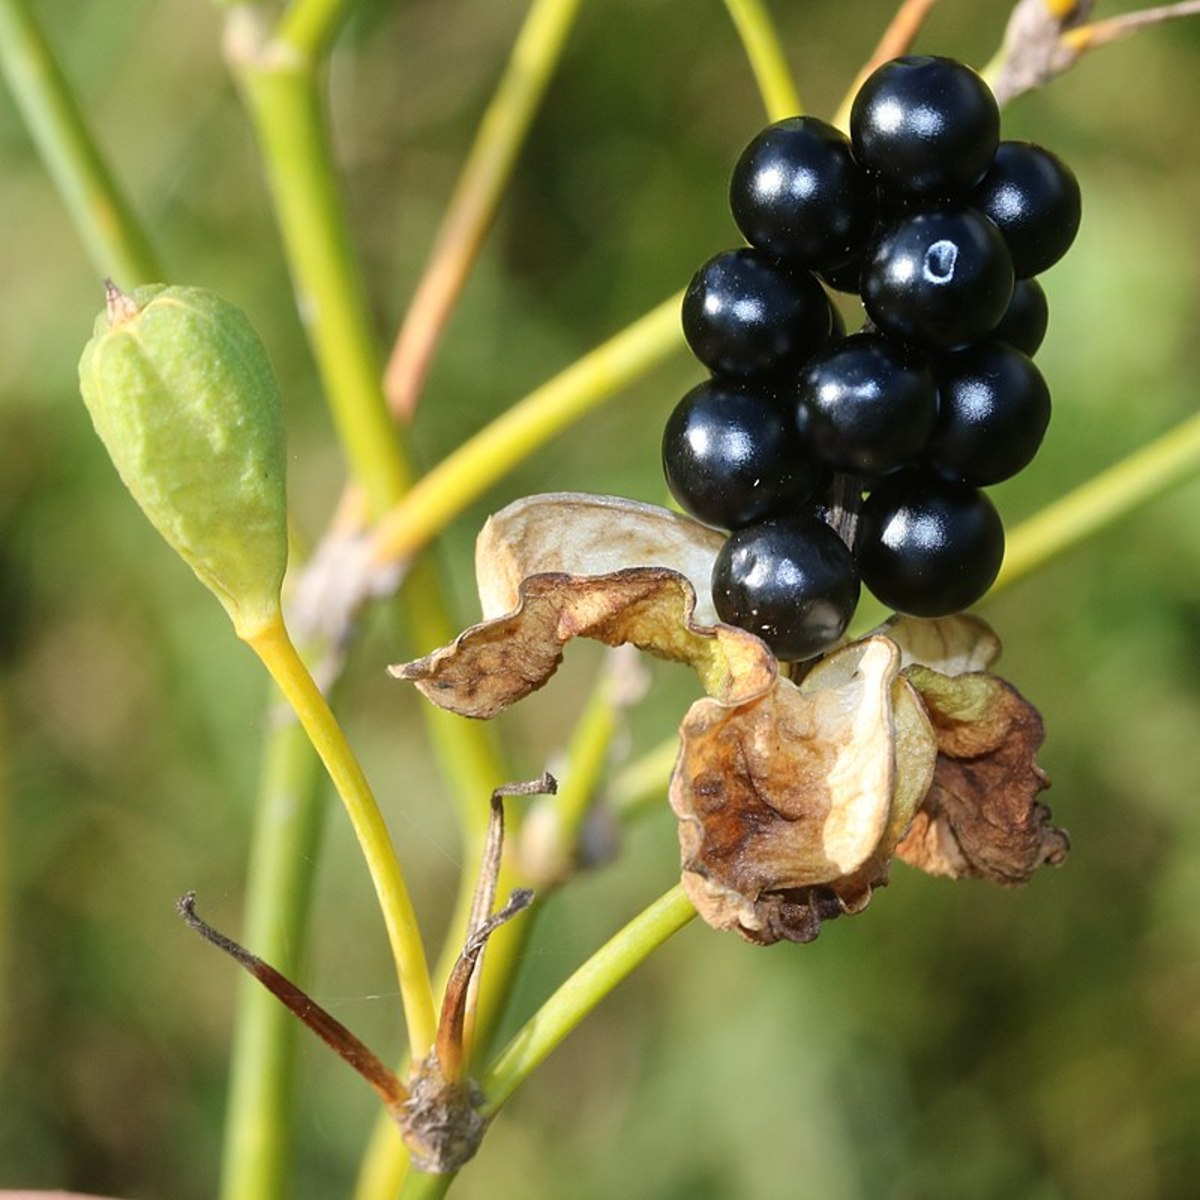 Blackberry lilies produce seed pods that start out green, then dry out and open to display the shiny black seeds from which the plants get their name.